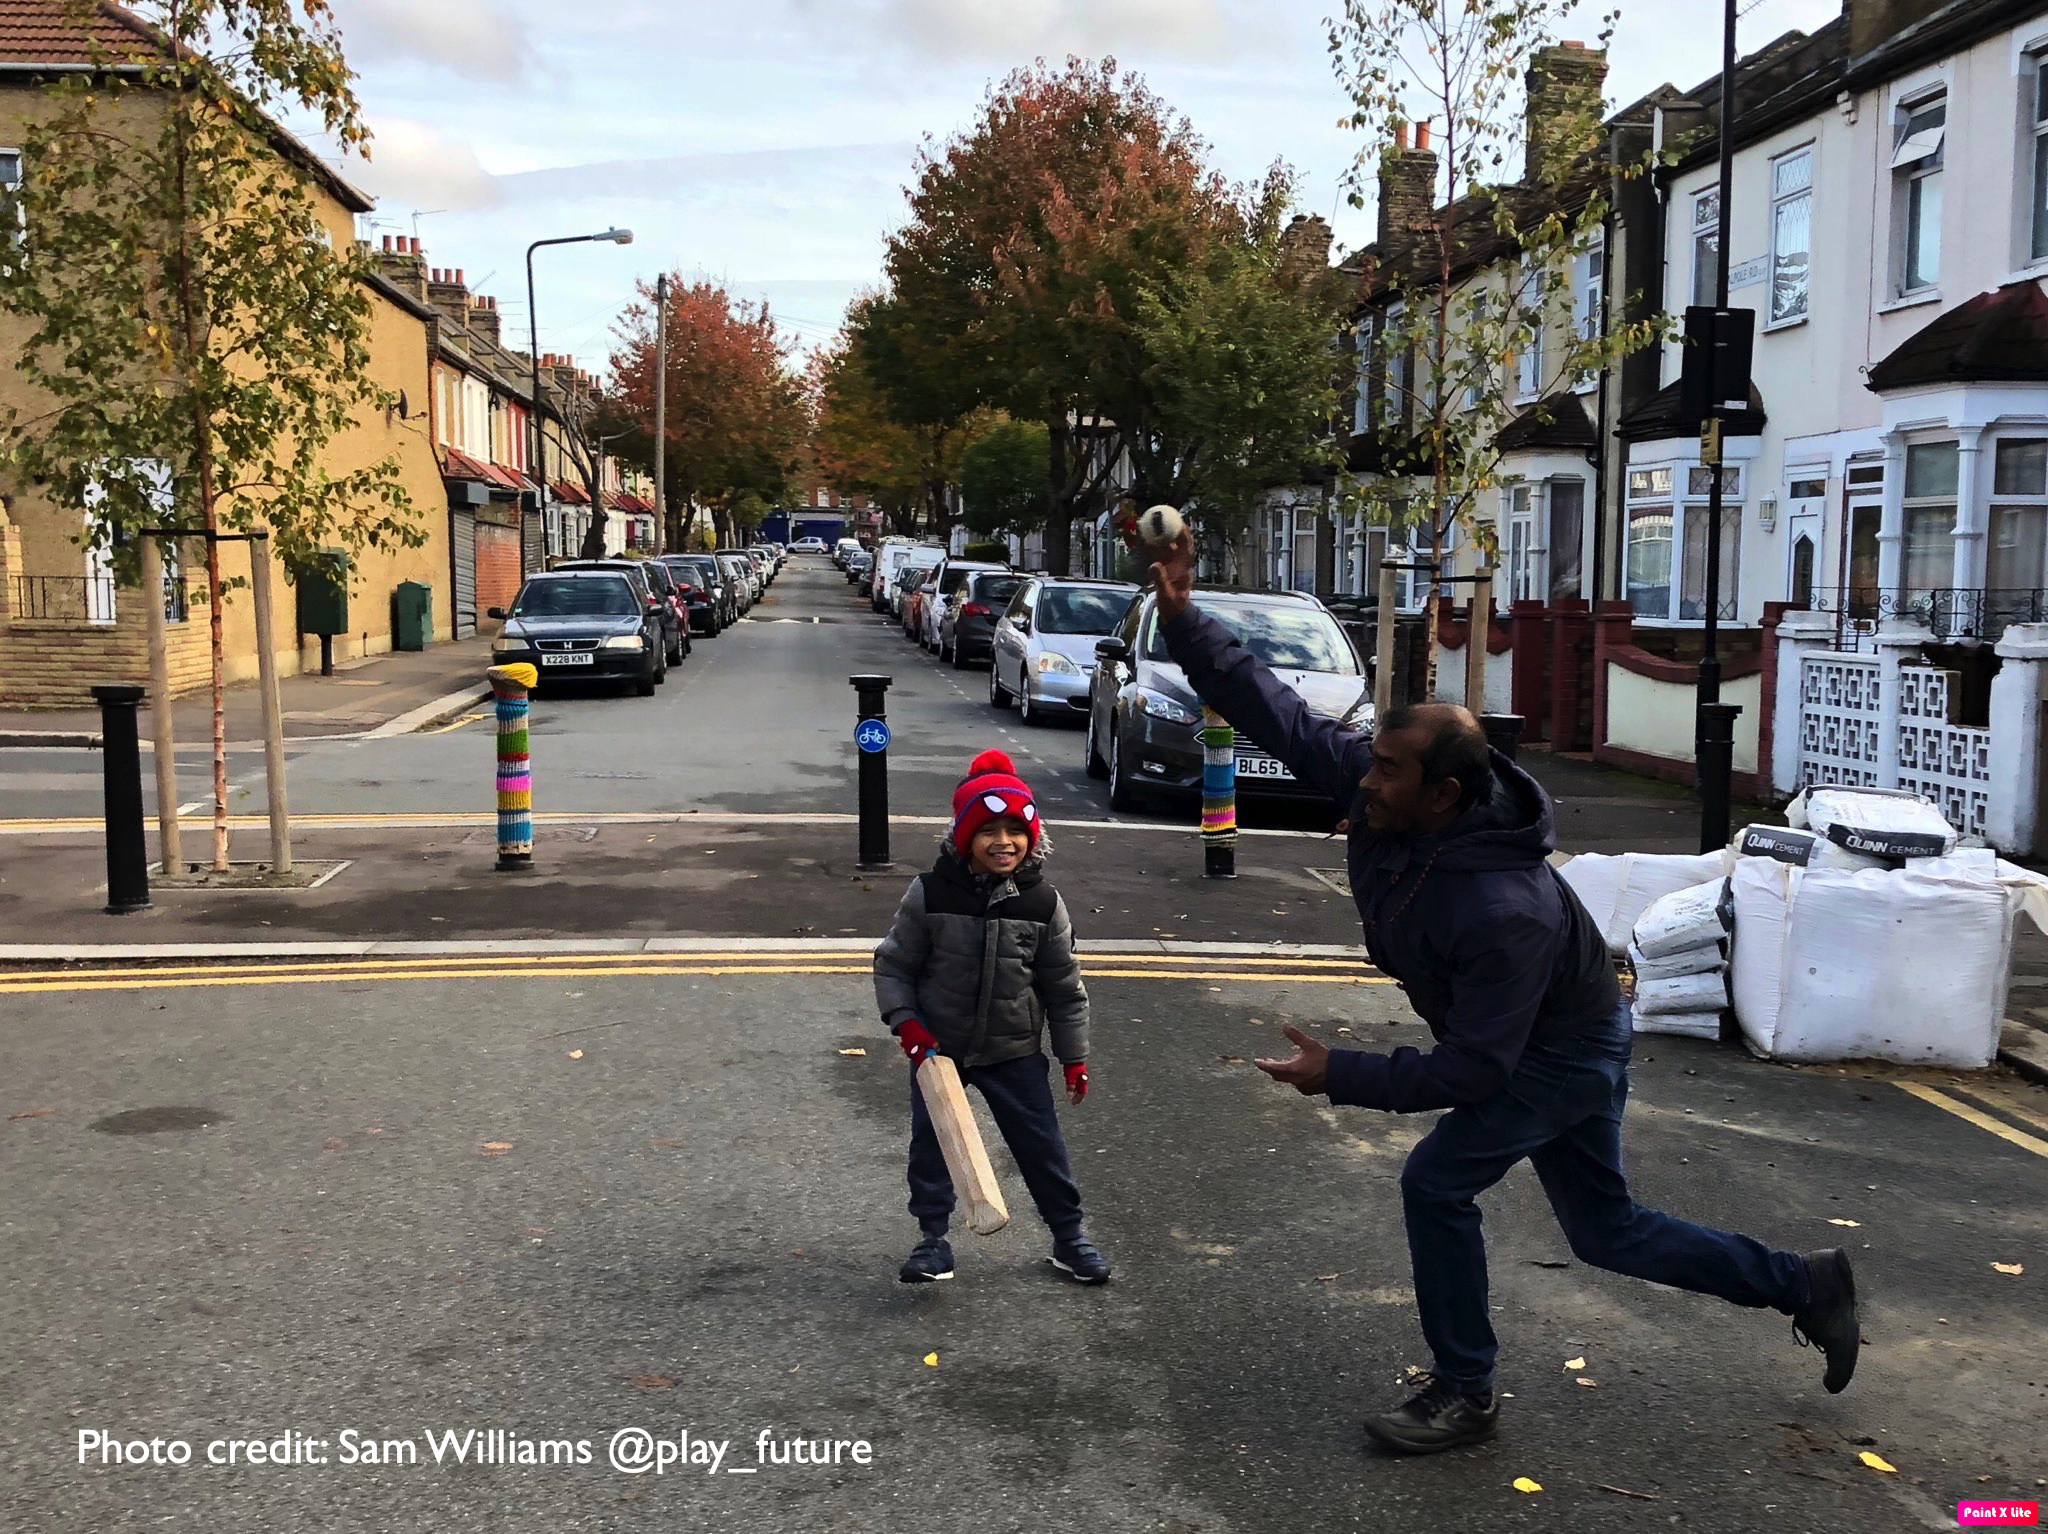 Playing cricket in the road